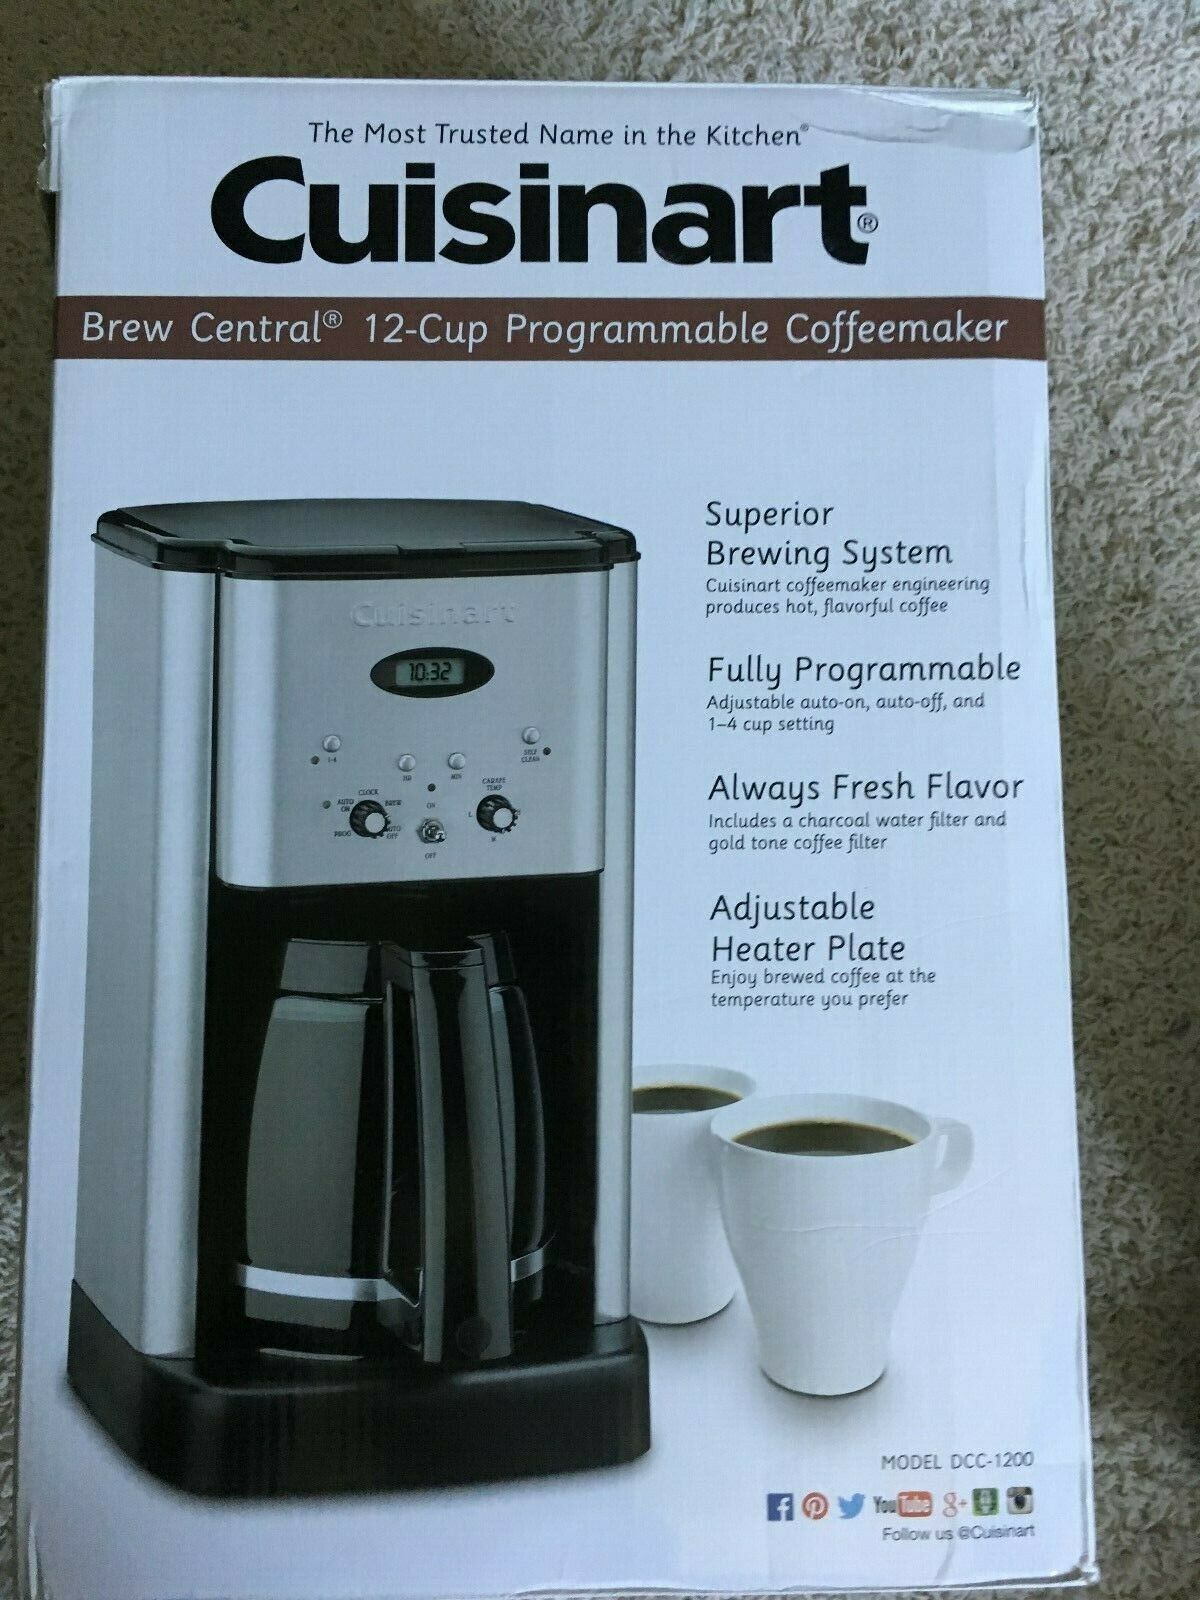 Https Ift Tt 2mb1rvi Coffee Makers Ideas Of Coffee Makers Coffeemakers Coffee Cuisinart 12 Cup Progr Coffee Maker Cuisinart Coffee Maker Buy Coffee